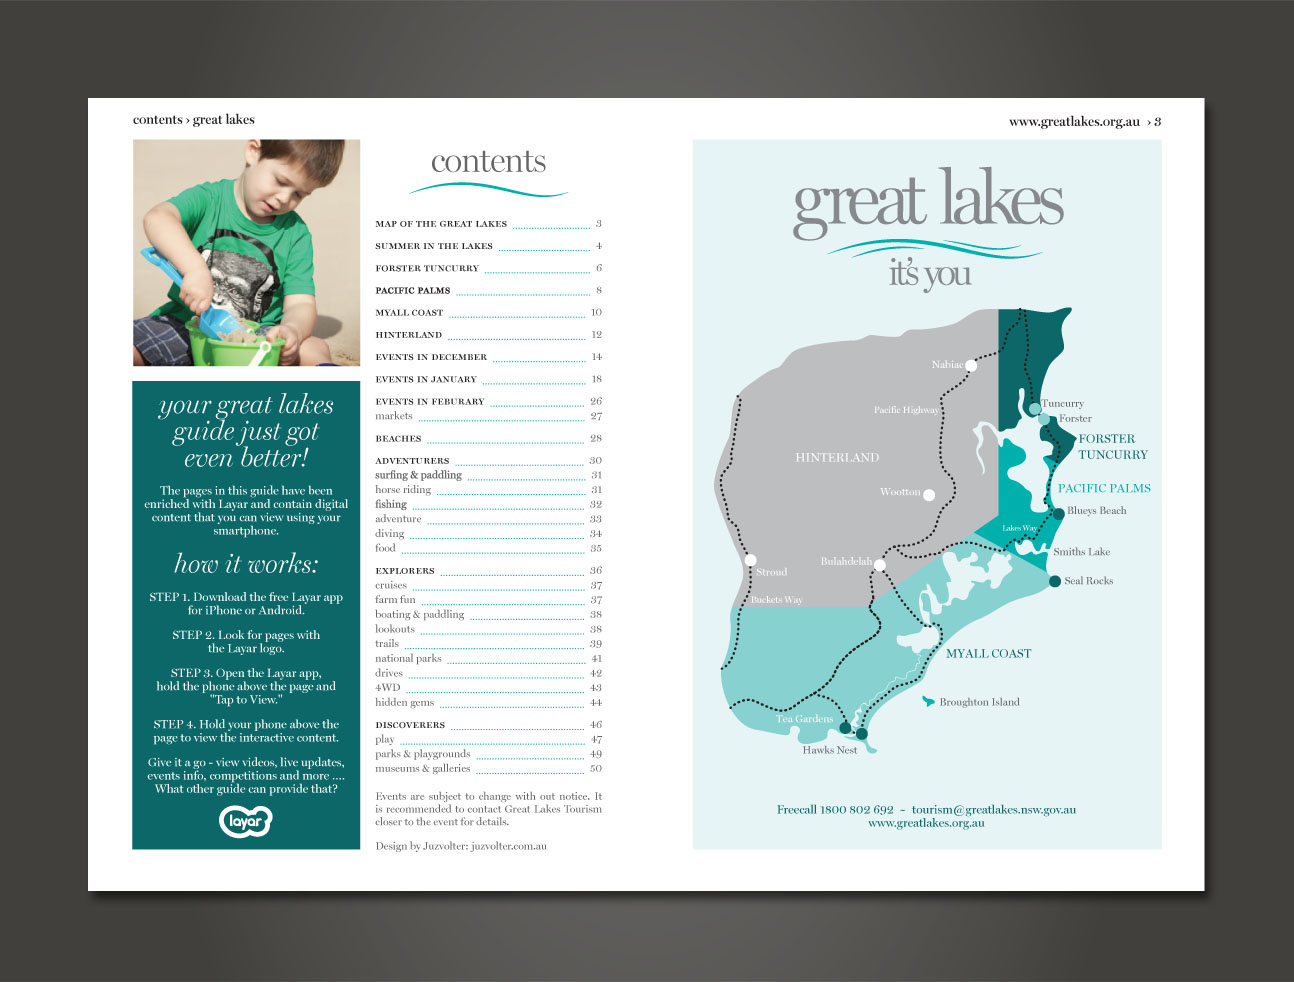 Great Lakes Tourism Summer Guide 2